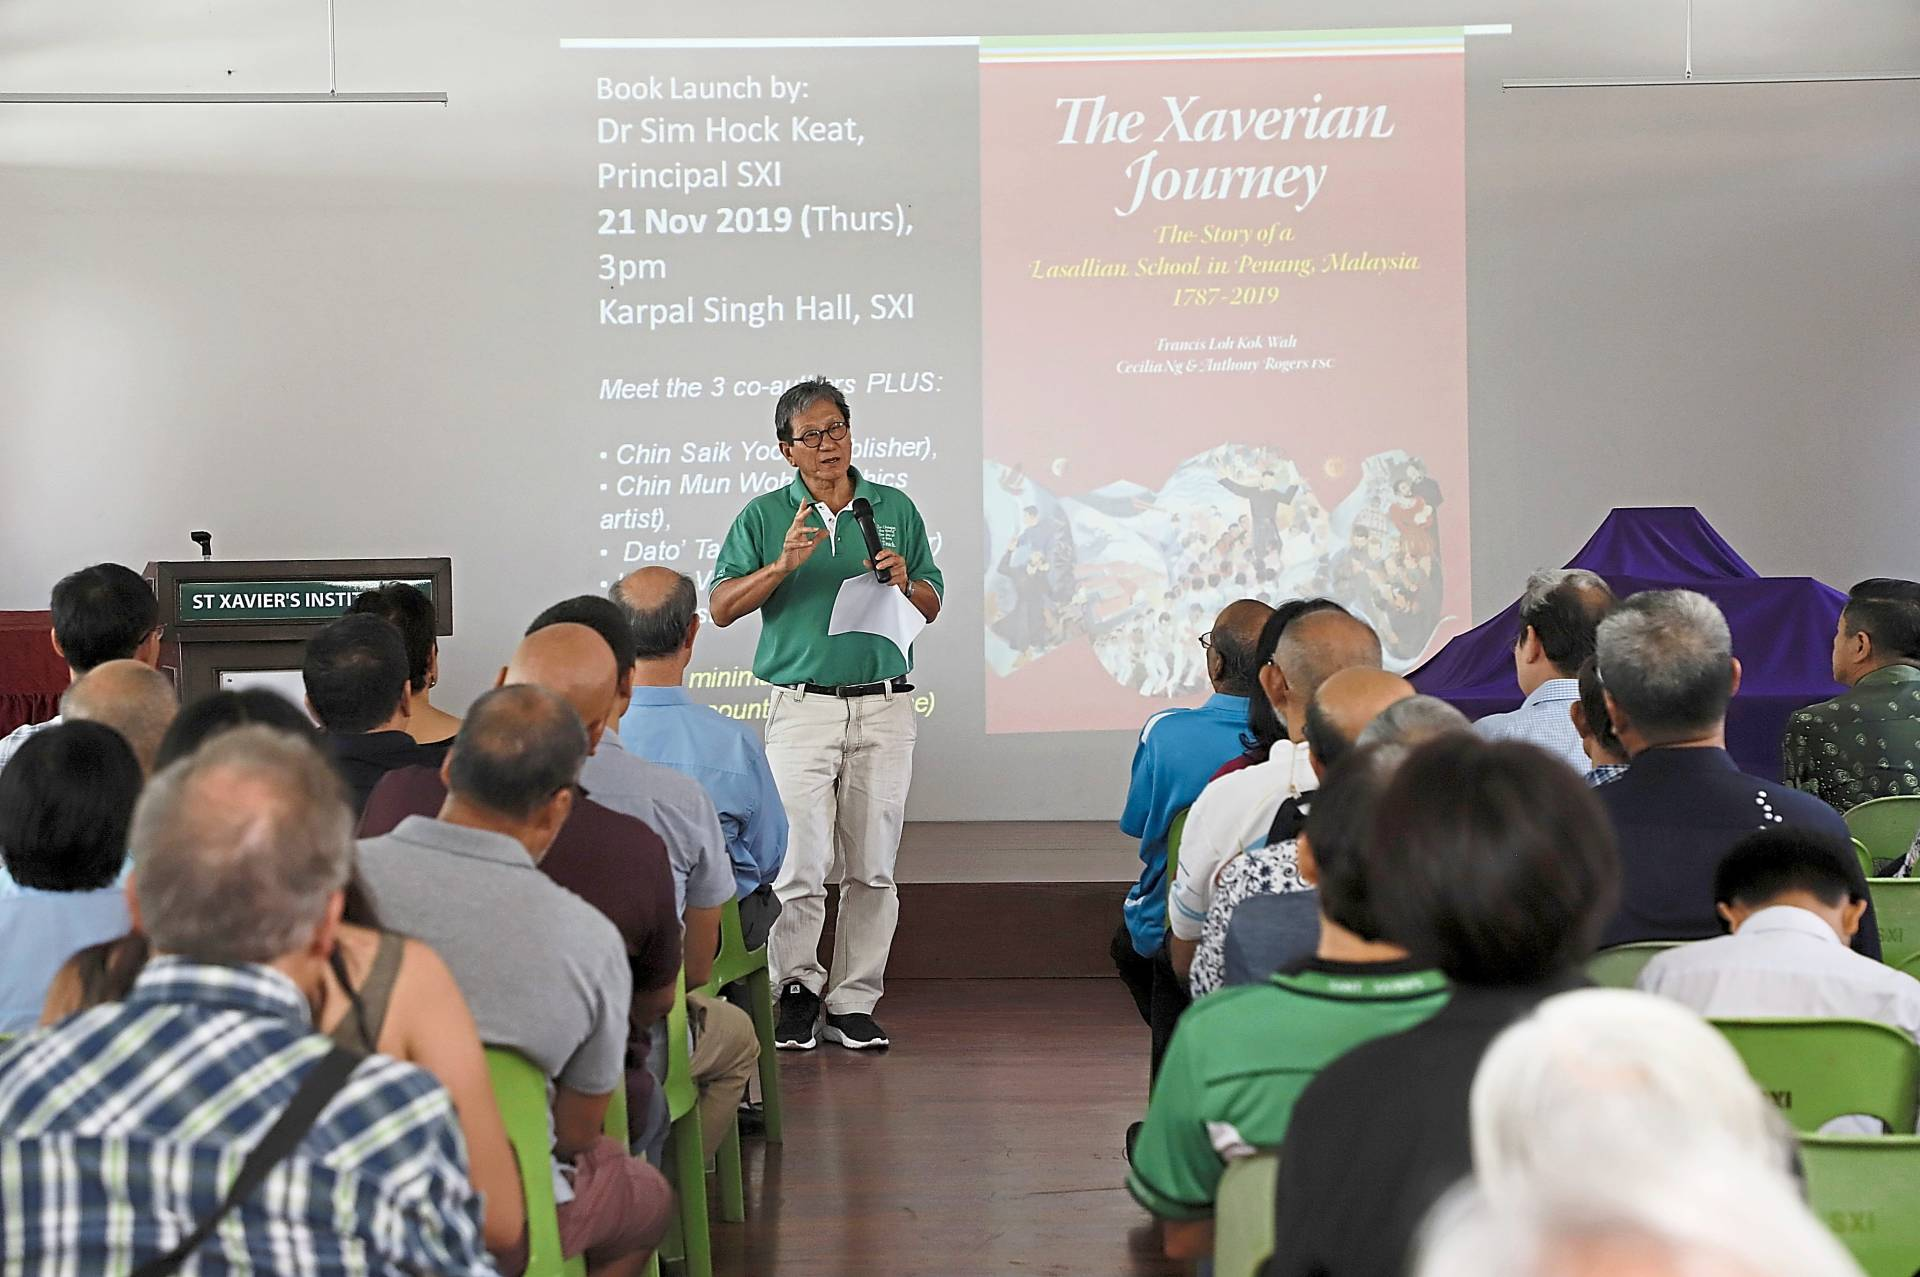 Loh speaking at the book launch.